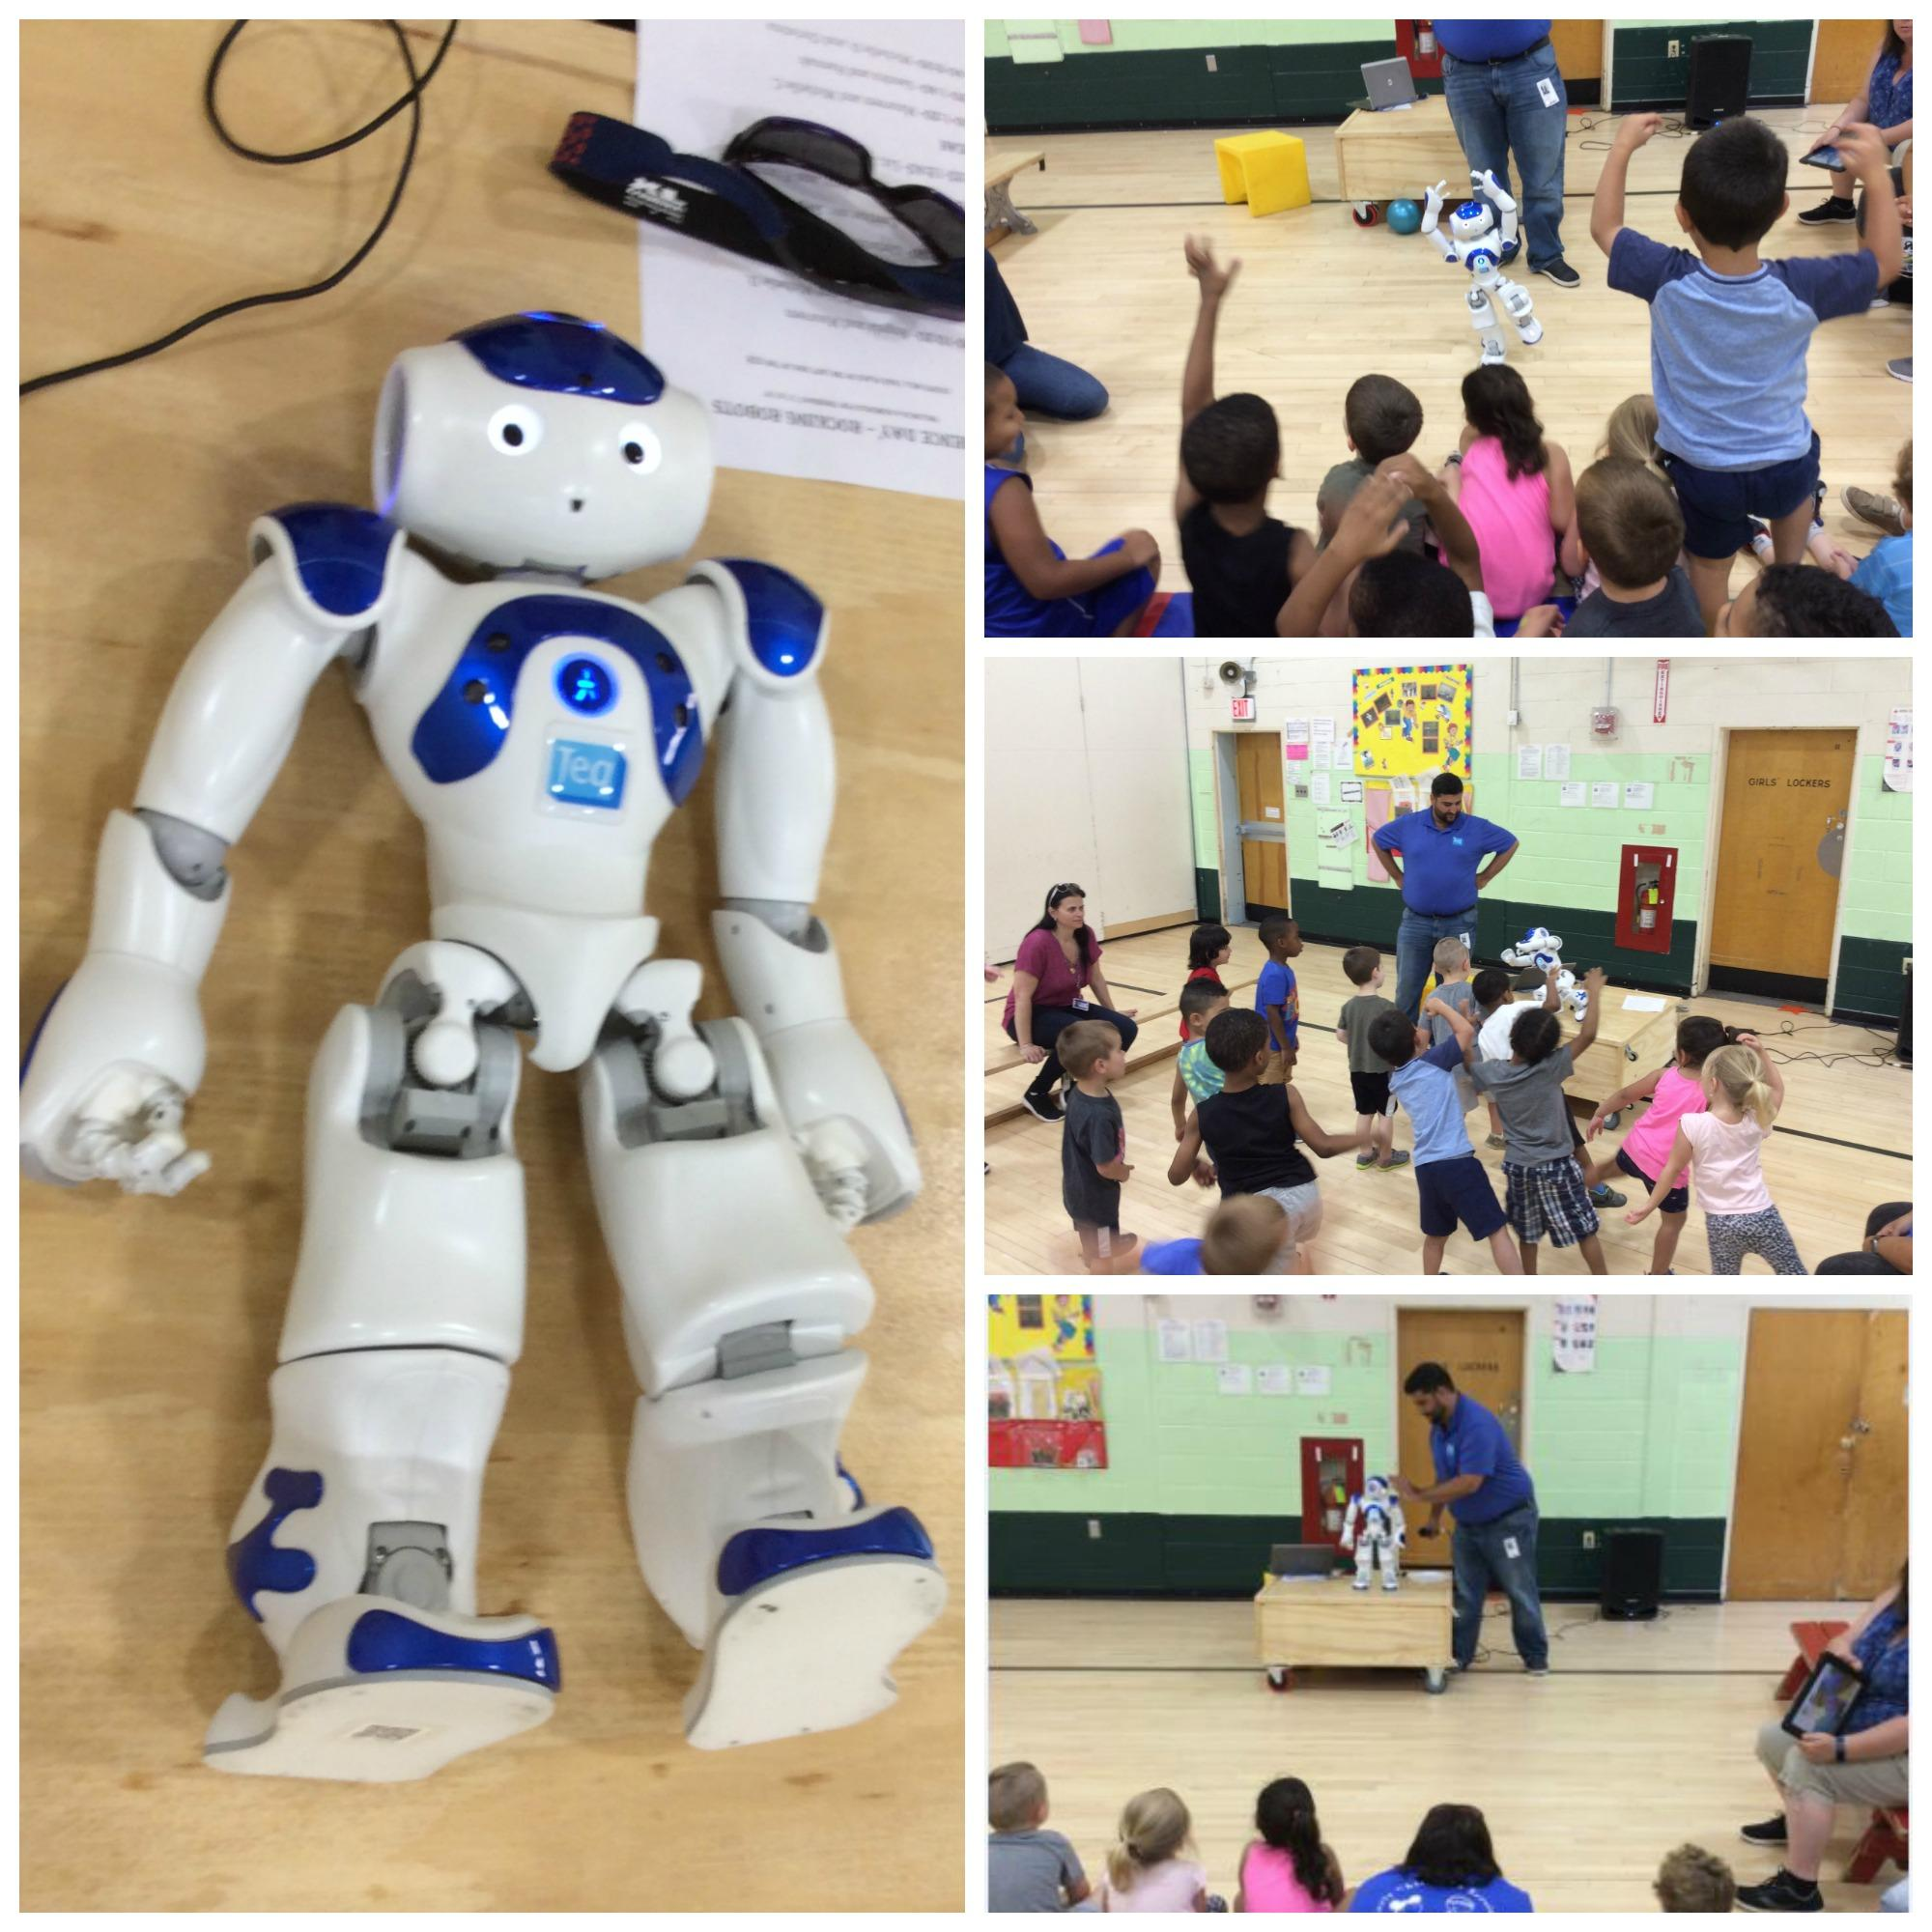 Collage of Teq NAO Robot and students dancing and learning